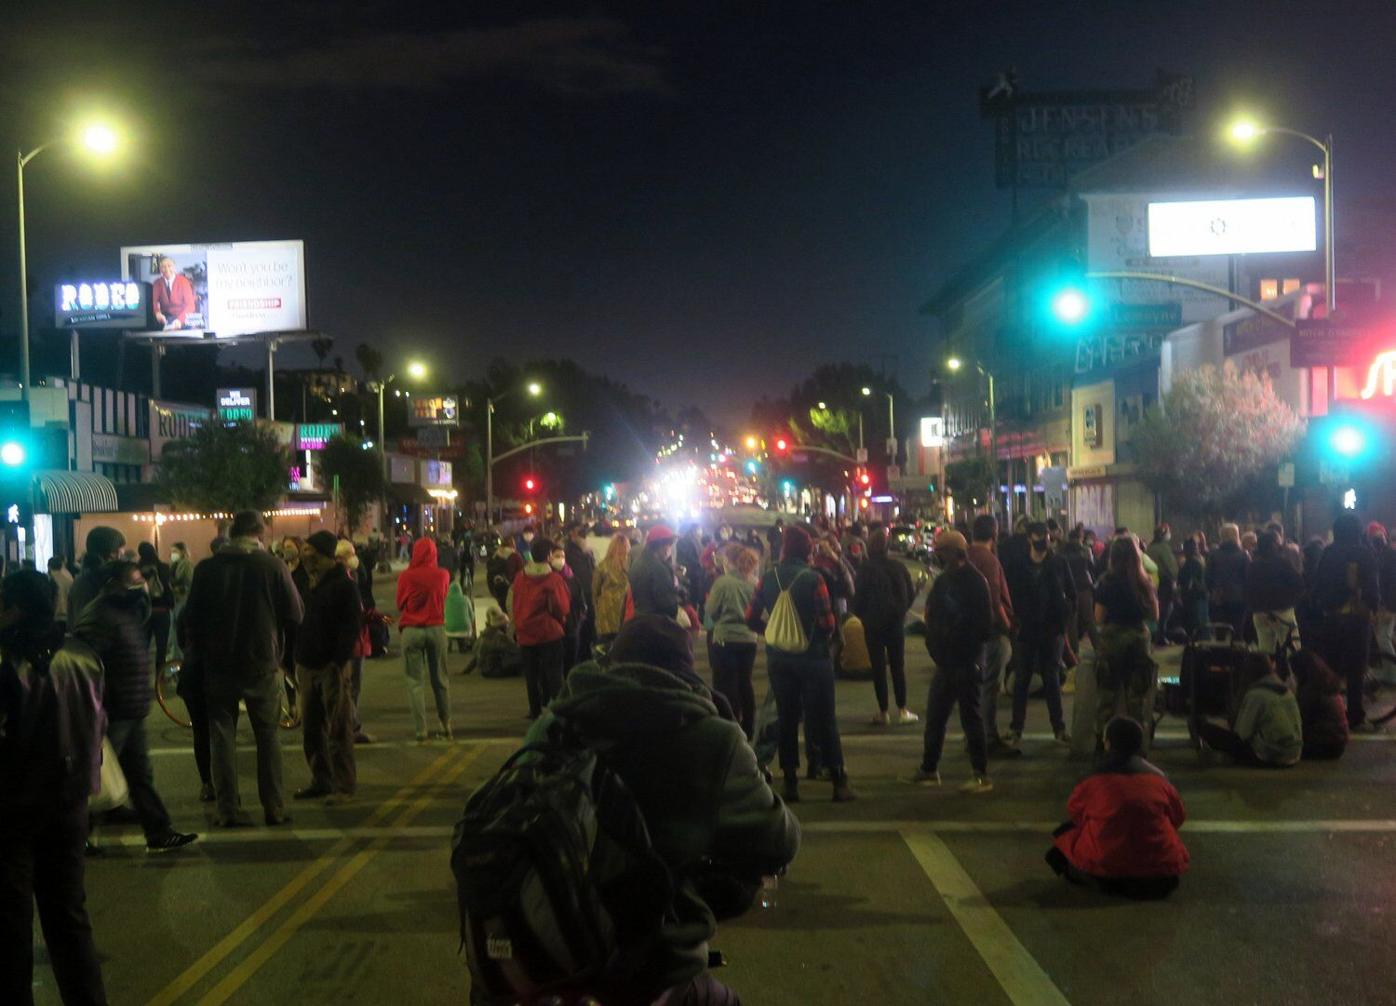 Police and protestor standoff in echo park